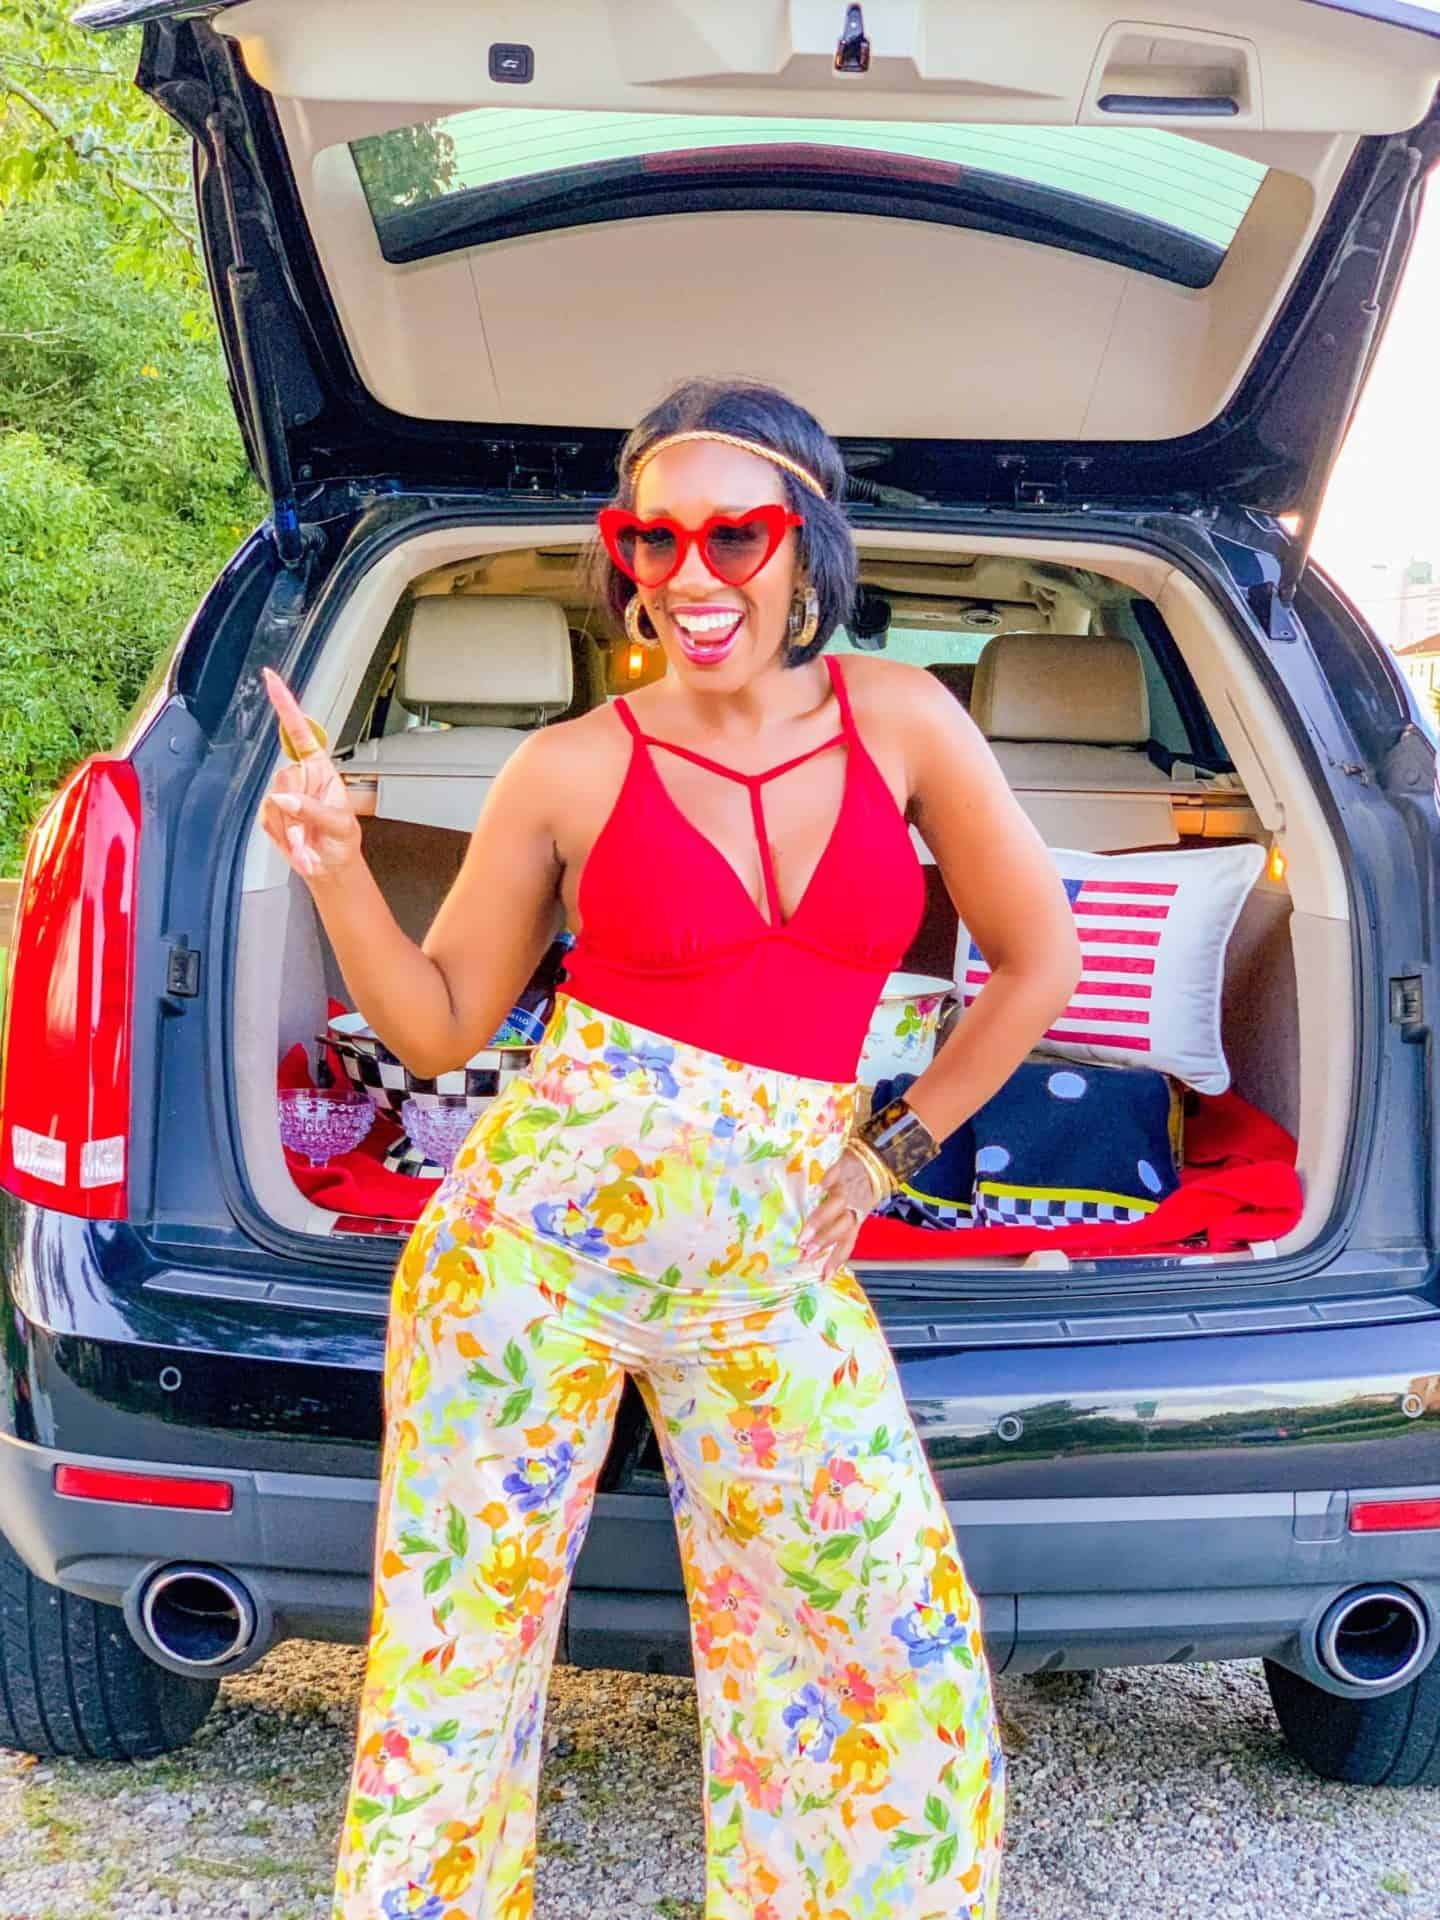 Shaunda Necole Work Hard & Play Harder- Labor Day Weekend 70's Groove! Flower Child Party Pants!